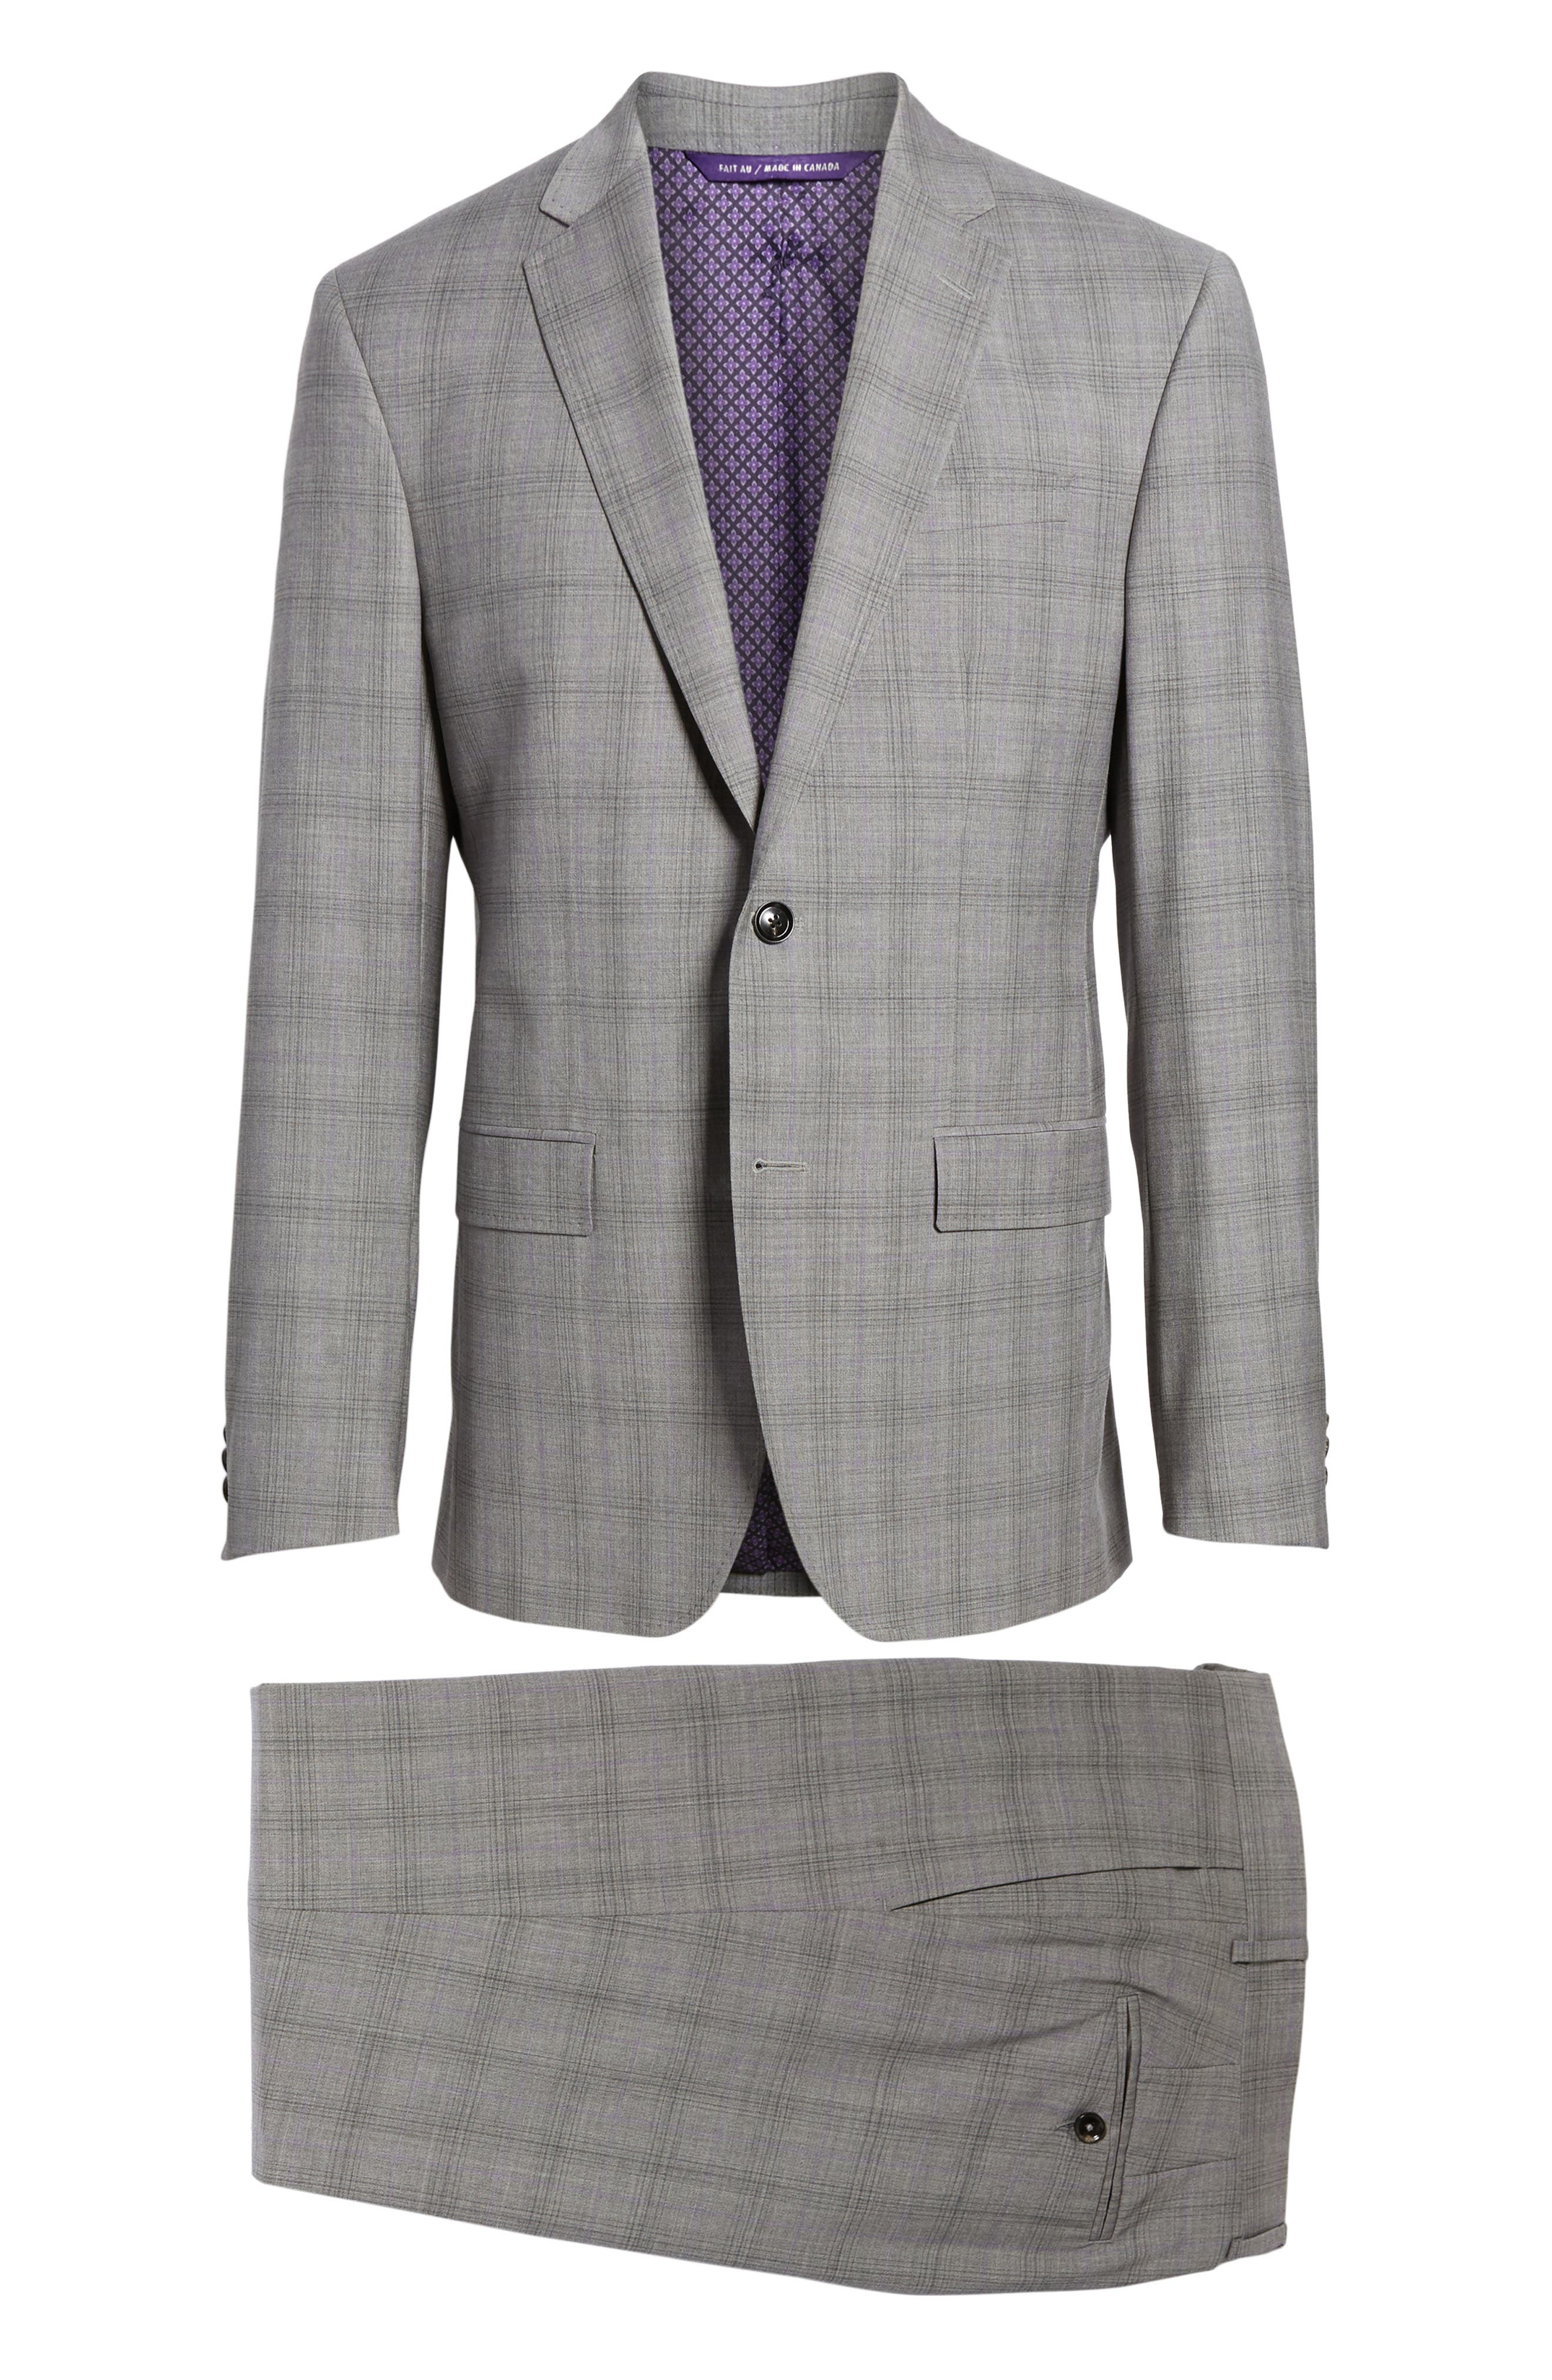 Jay Trim Fit Plaid Wool Suit,                             Alternate thumbnail 8, color,                             Light Grey